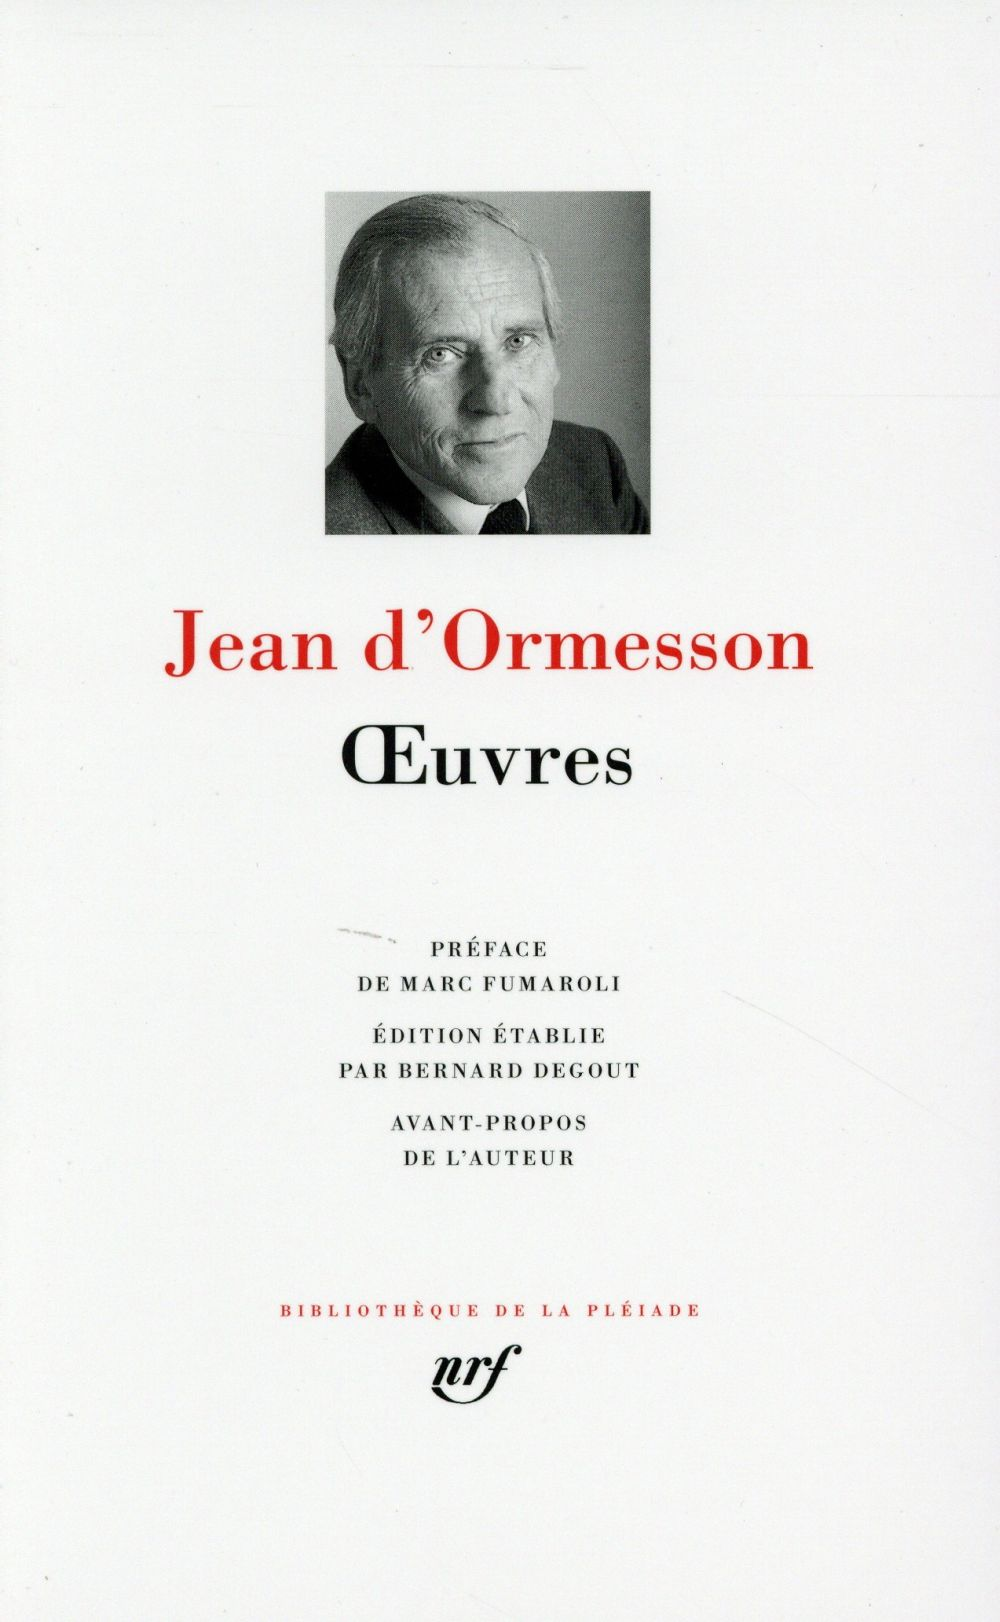 OEUVRES (TOME 1) Ormesson Jean d' Gallimard